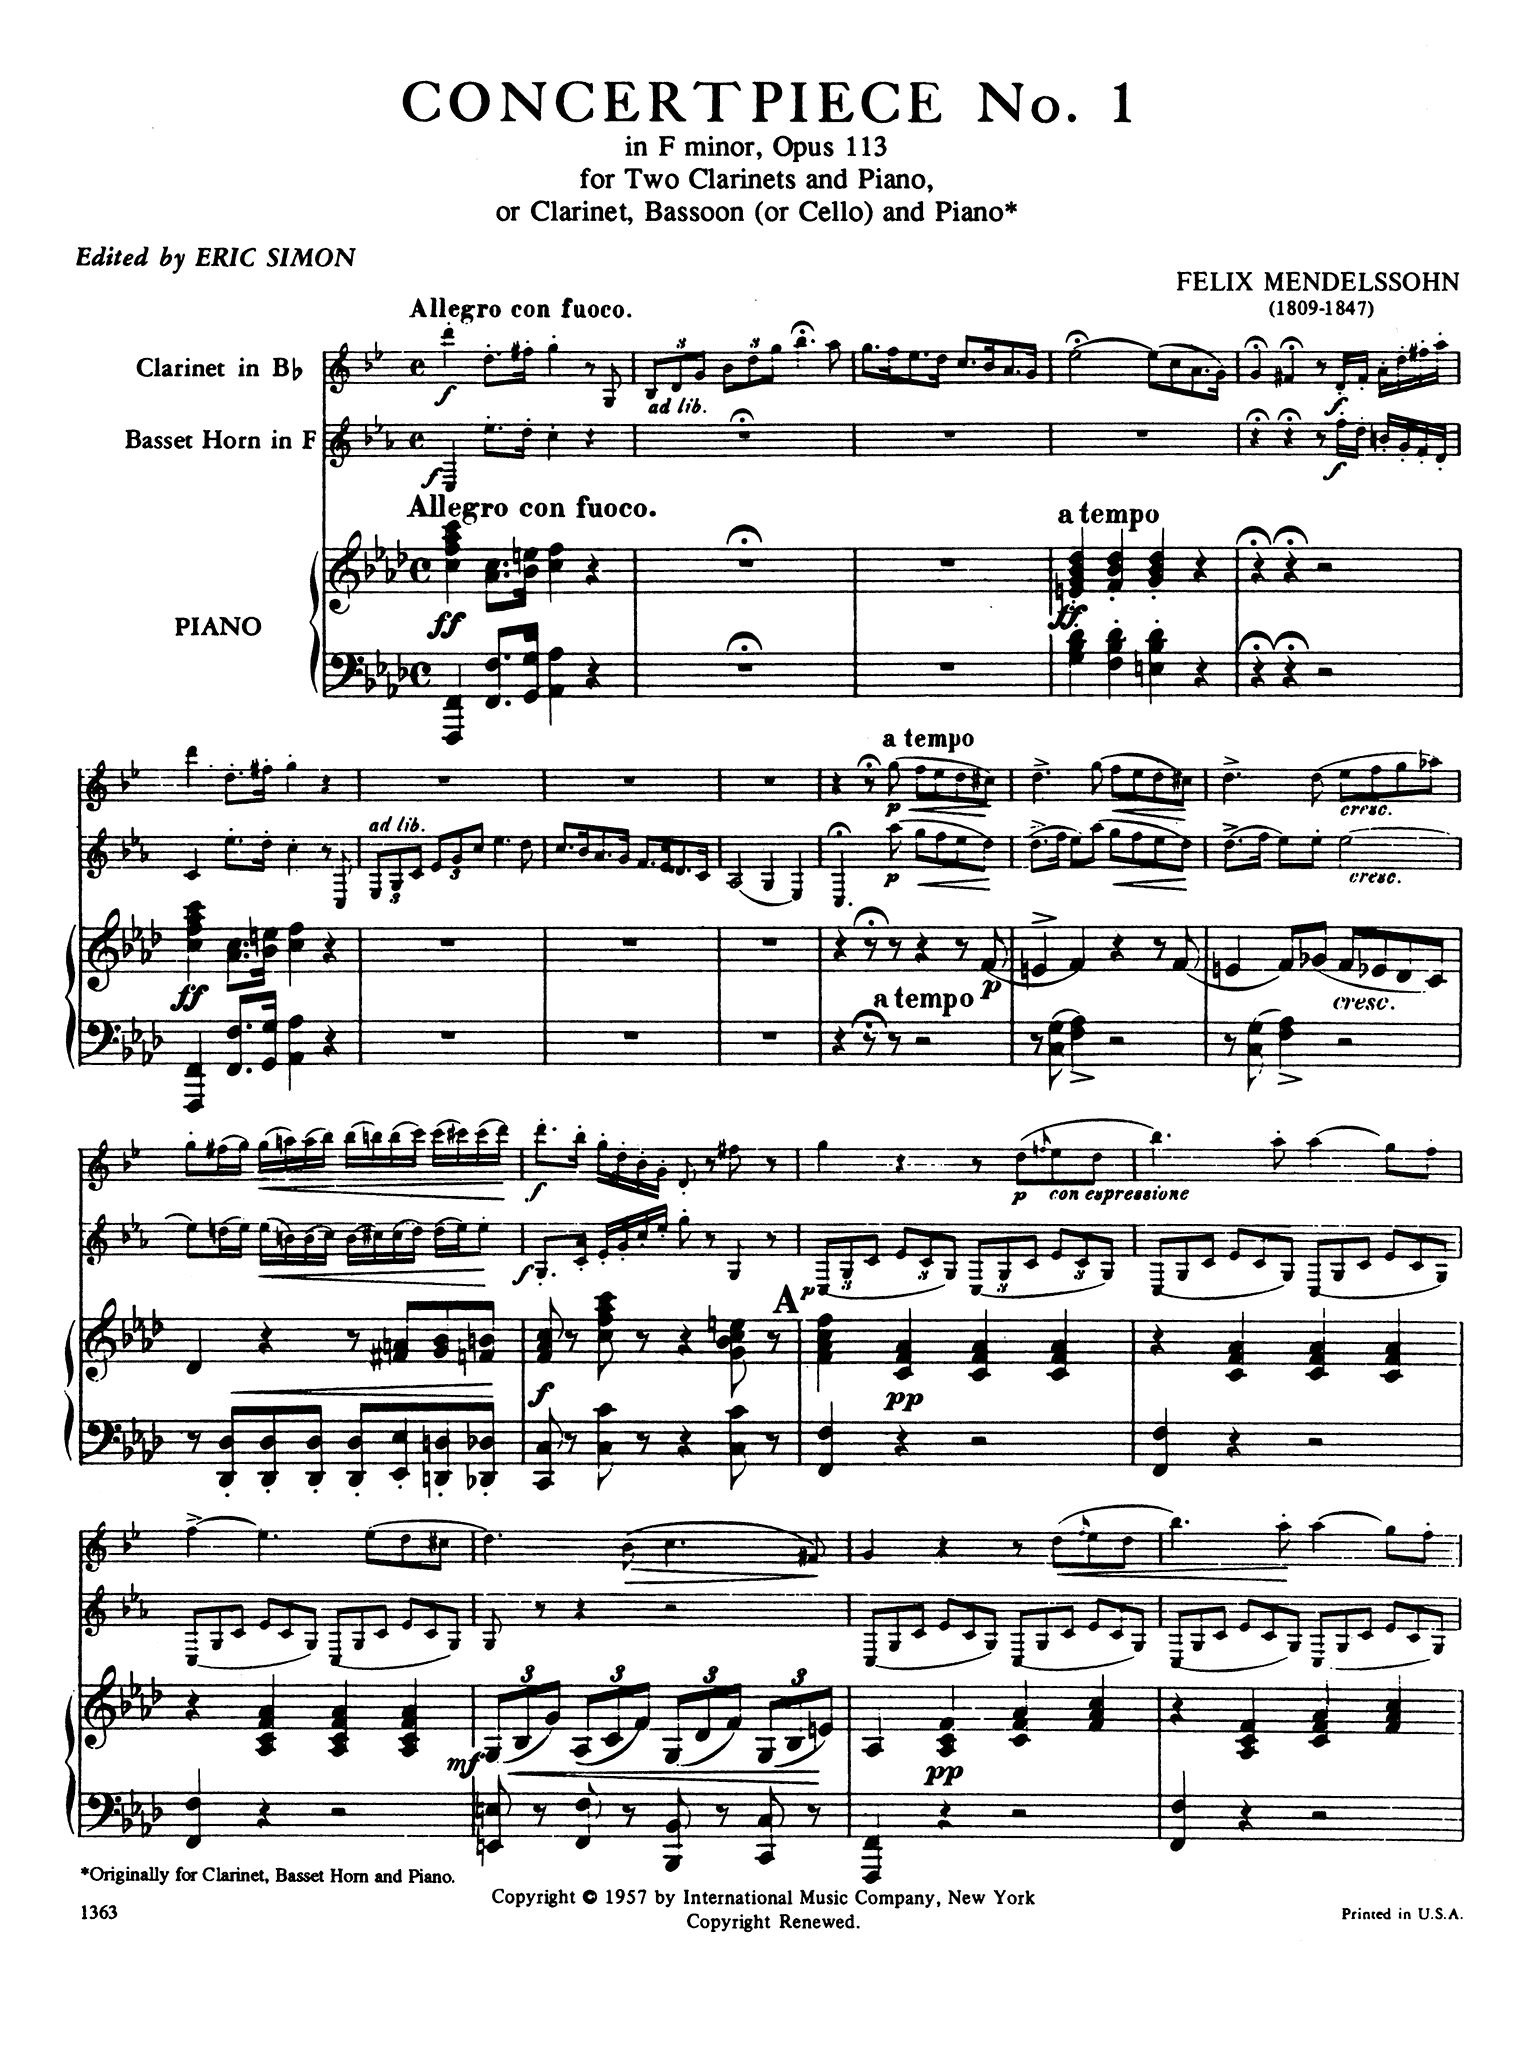 Concertpiece No. 1 in F Minor, Op. 113 Score